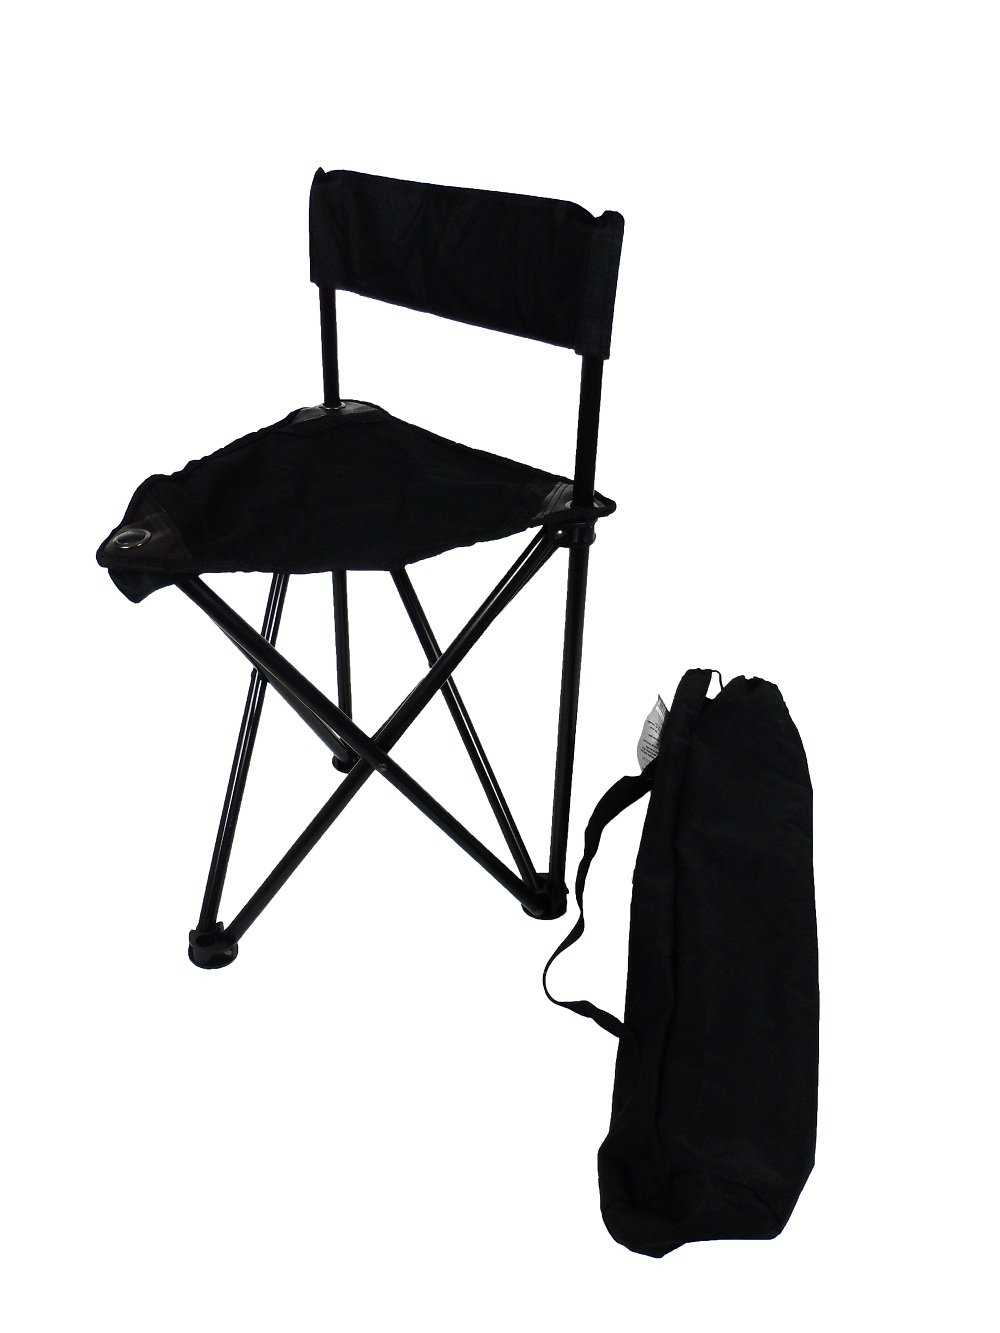 RVTravelMats Mini Folding Tri-pod Fishing Chair Backpacking Mini Camping Chair with Bag (275lbs Capacity) at Sears.com